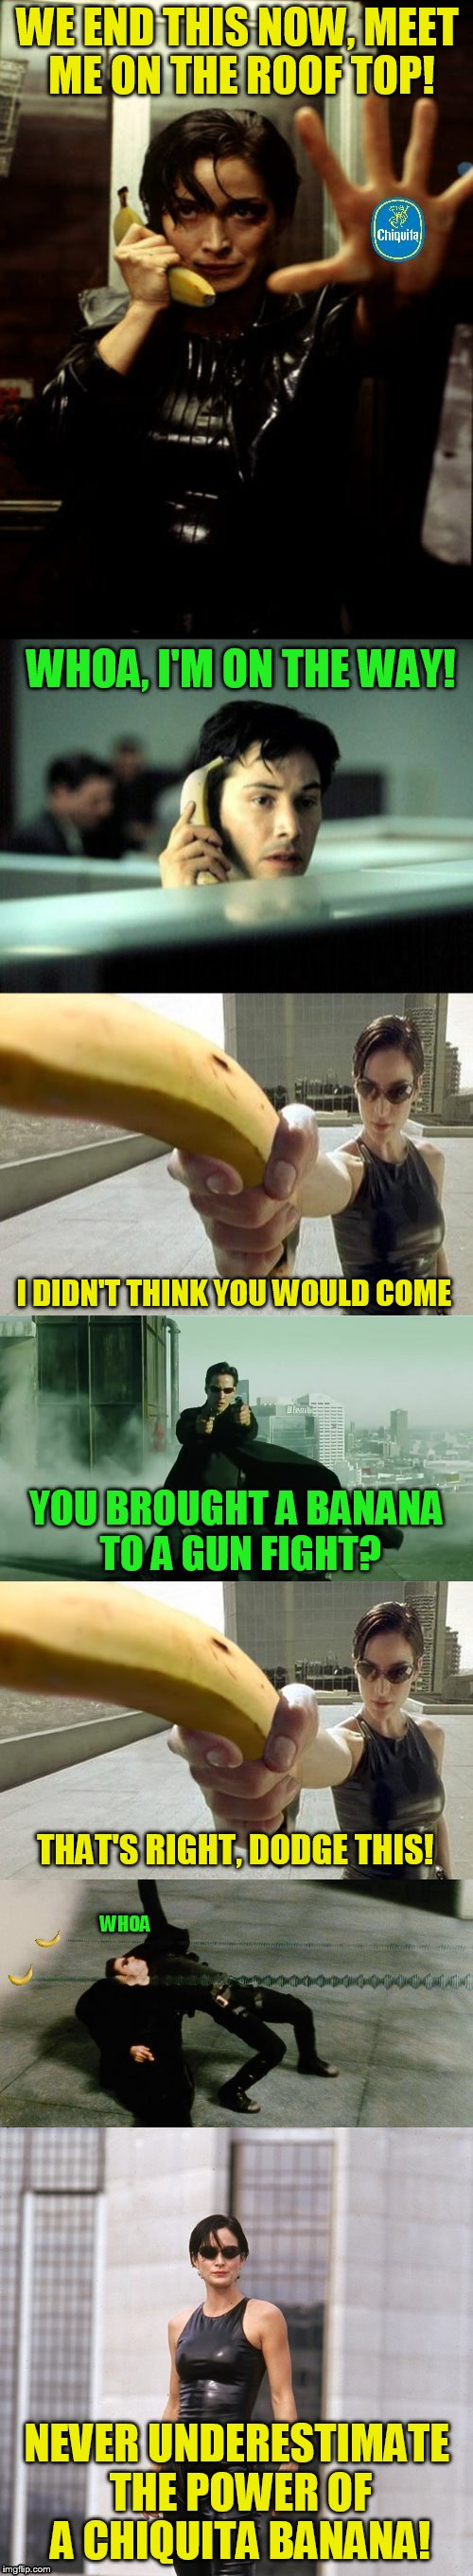 Banana Week From March 10th to 17th ( A 4chanUser69 Event) | WE END THIS NOW, MEET ME ON THE ROOF TOP! WHOA, I'M ON THE WAY! I DIDN'T THINK YOU WOULD COME YOU BROUGHT A BANANA TO A GUN FIGHT? THAT'S RI | image tagged in banana week,banana,meme,matrix,chiquita,funny | made w/ Imgflip meme maker